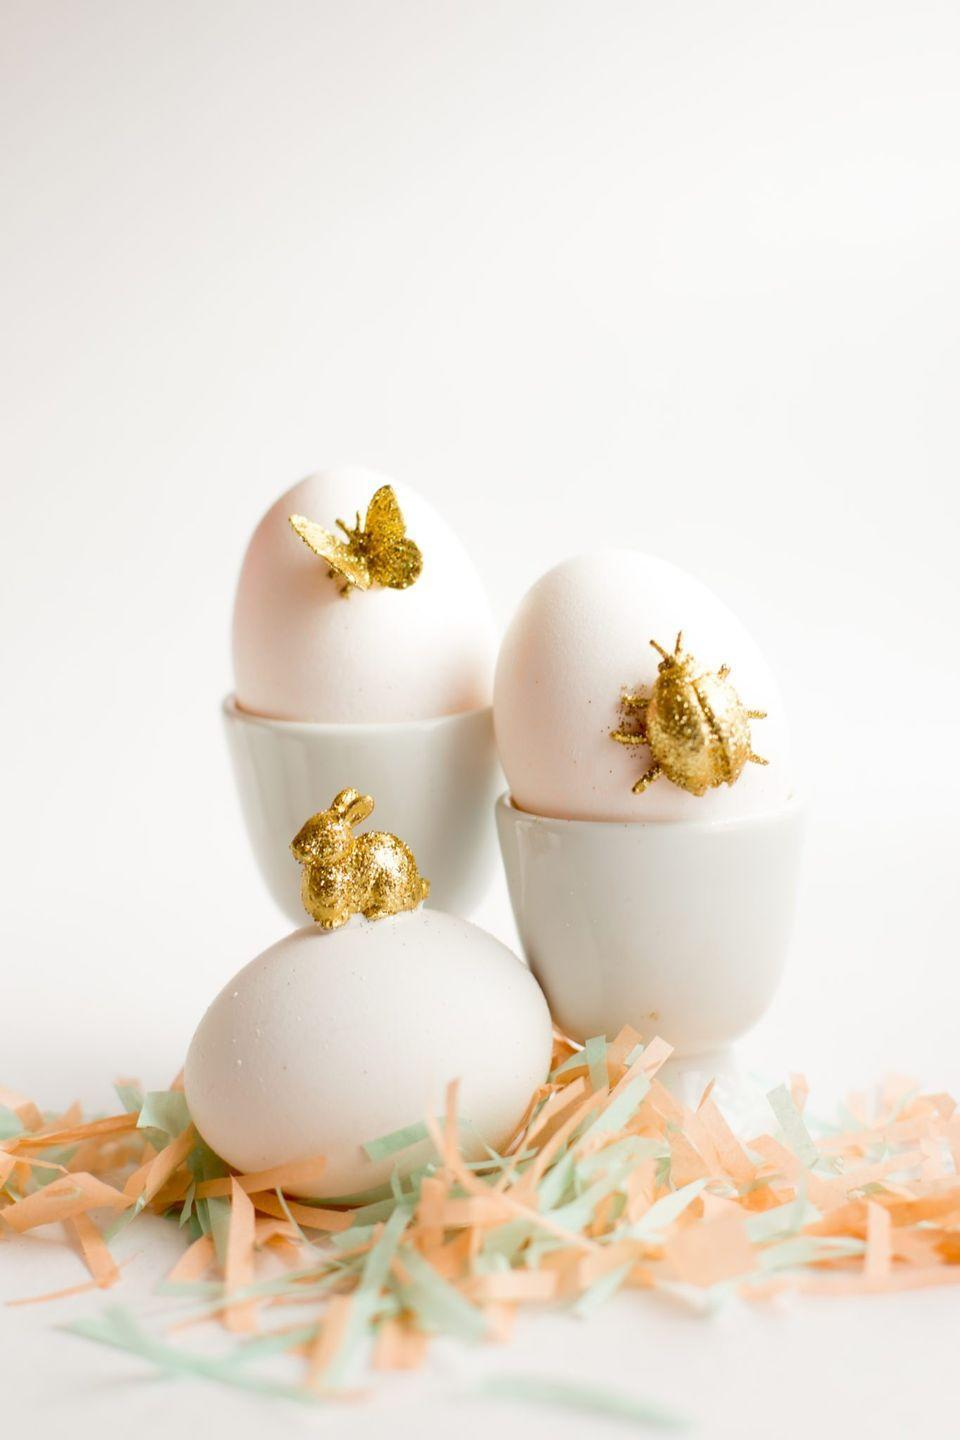 "<p>Grab a pack of your kids' favorite mini animals and convert them into perfectly proportioned Easter egg adornments, thanks to a bit of gold paint and glitter. </p><p><strong>Get the tutorial at <a href=""https://www.flaxandtwine.com/2015/03/gold-animal-easter-eggs-diy/"" rel=""nofollow noopener"" target=""_blank"" data-ylk=""slk:Flax & Twine"" class=""link rapid-noclick-resp"">Flax & Twine</a>.</strong></p><p><a class=""link rapid-noclick-resp"" href=""https://www.amazon.com/Pack-Fake-Bugs-Realistic-Insects/dp/B07RF5DK1J/ref=sr_1_1_sspa?tag=syn-yahoo-20&ascsubtag=%5Bartid%7C10050.g.1282%5Bsrc%7Cyahoo-us"" rel=""nofollow noopener"" target=""_blank"" data-ylk=""slk:SHOP PLASTIC ANIMALS"">SHOP PLASTIC ANIMALS</a></p>"